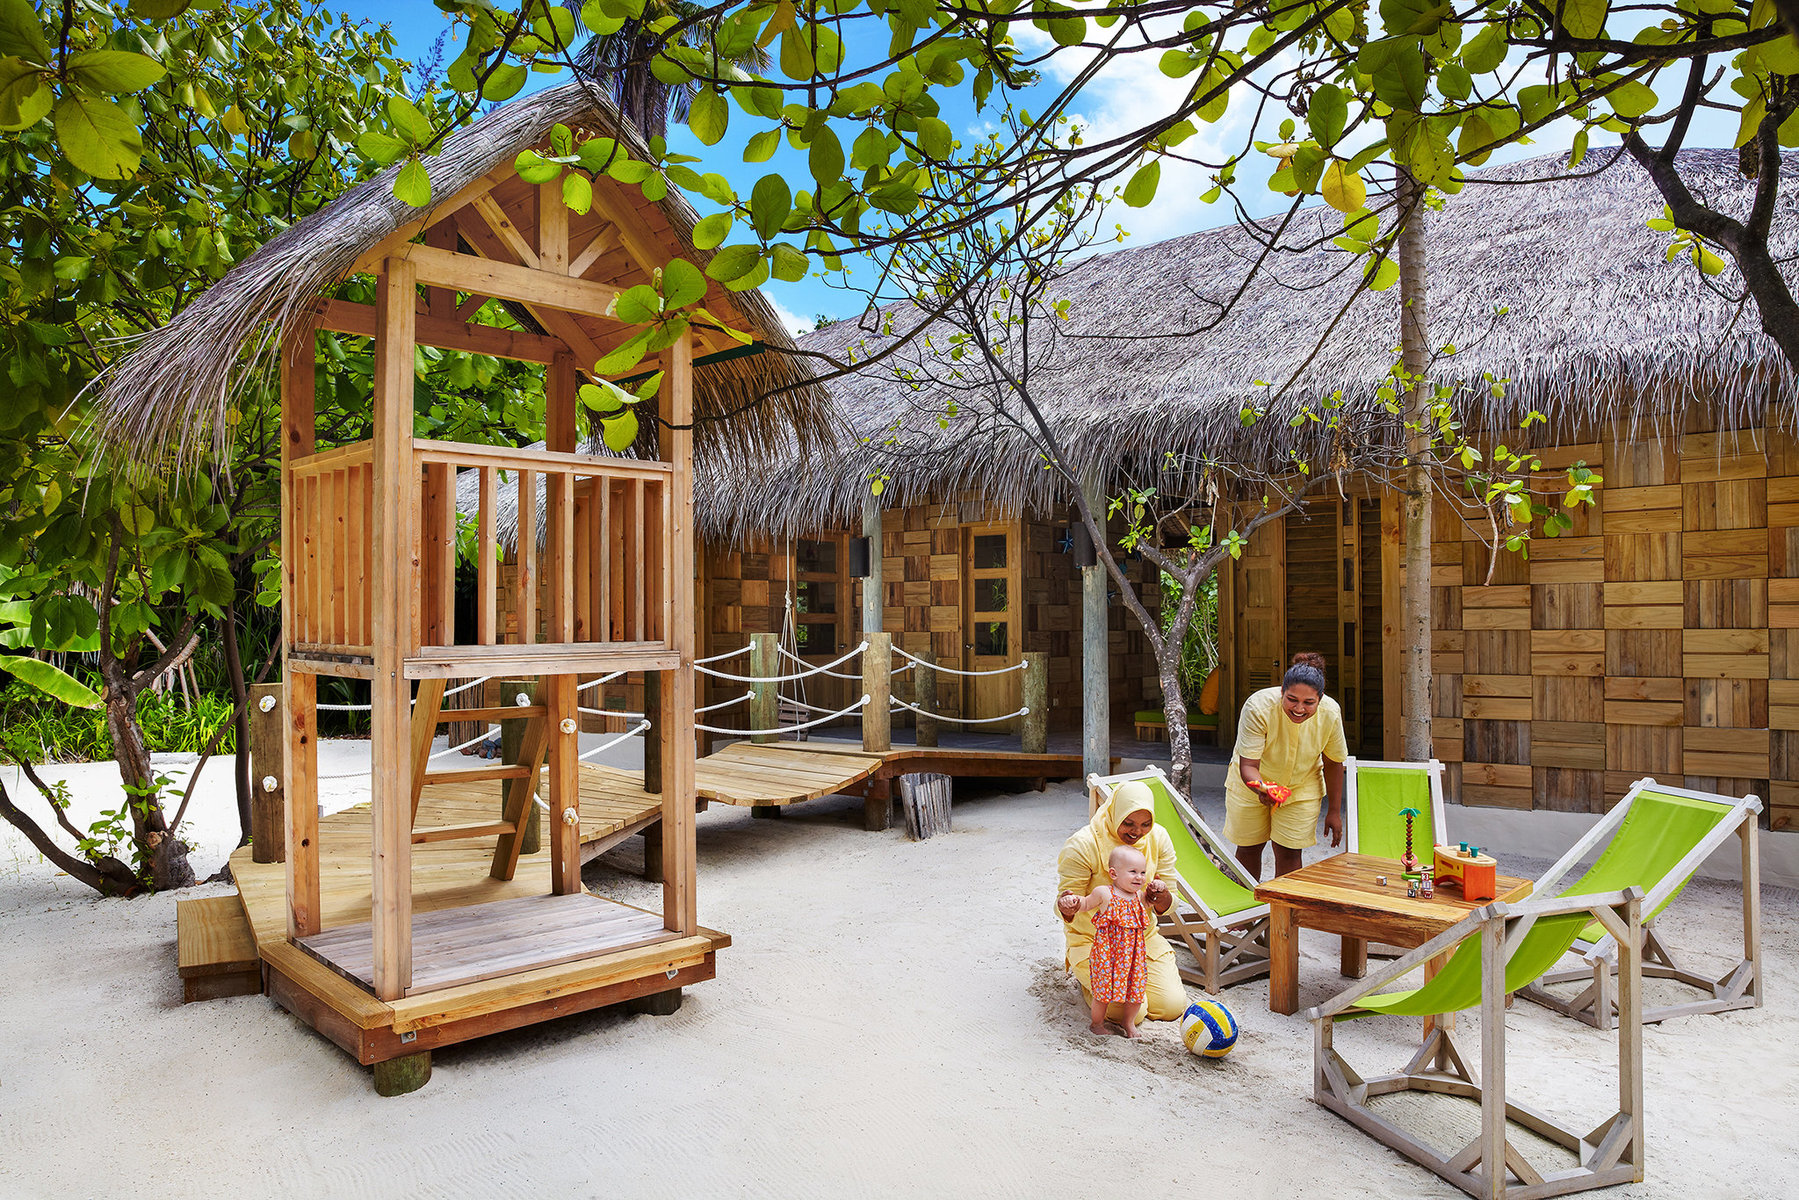 The Den -